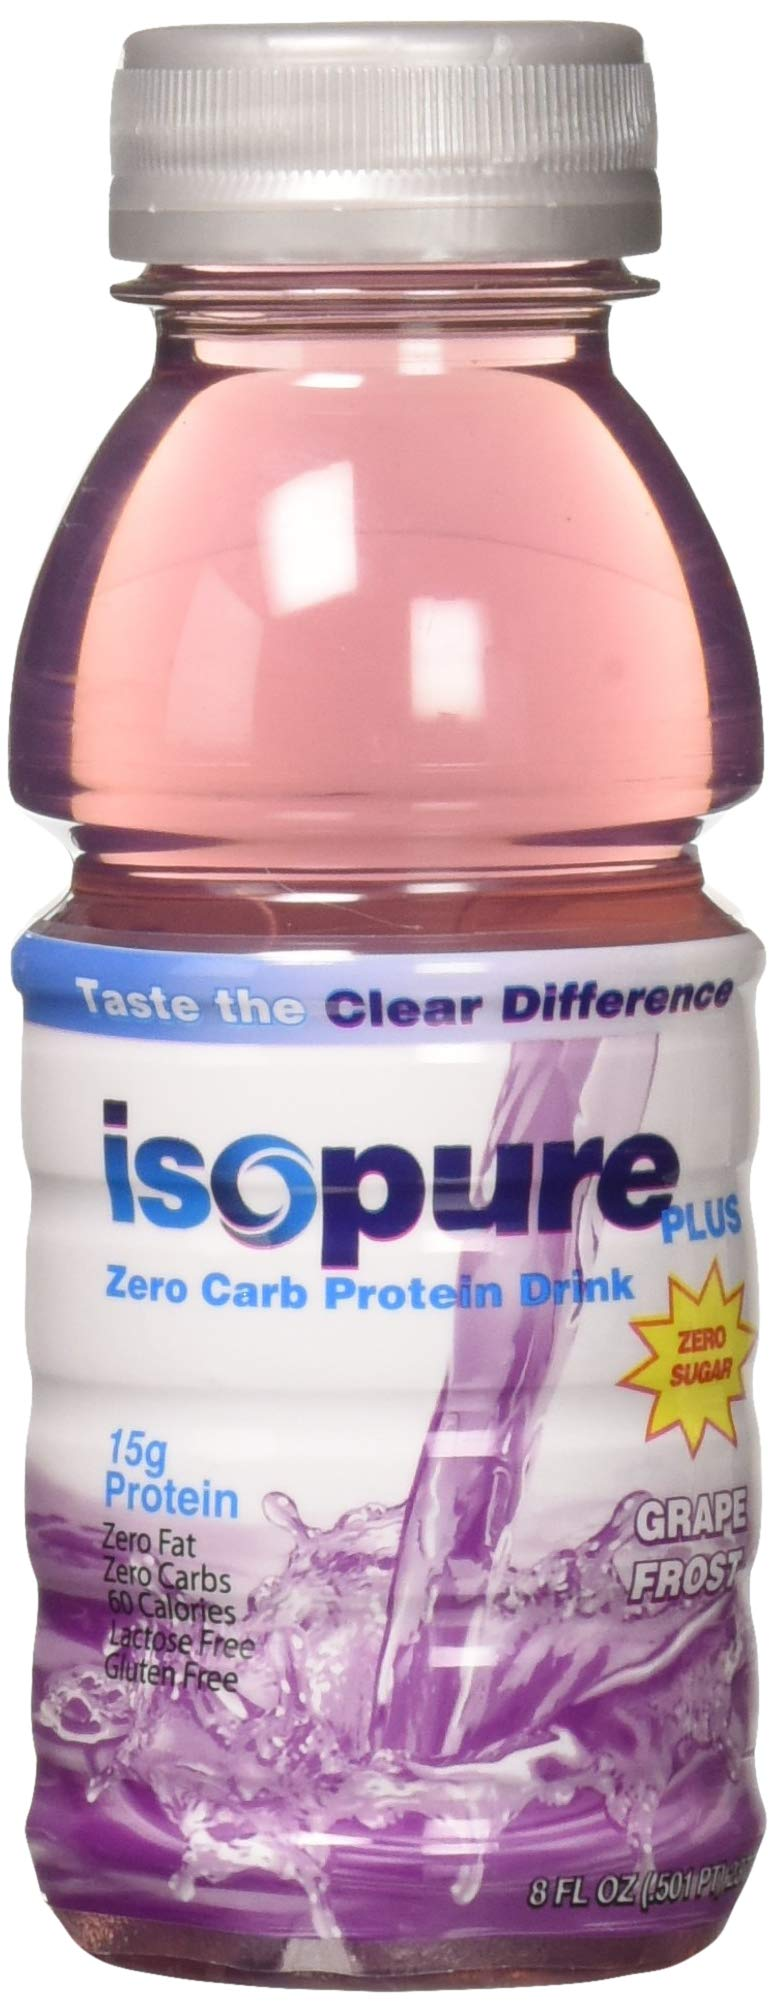 Isopure Plus 0 Carb - Zero Carb Protein Drink - Grape Frost, 6 Count by Isopure